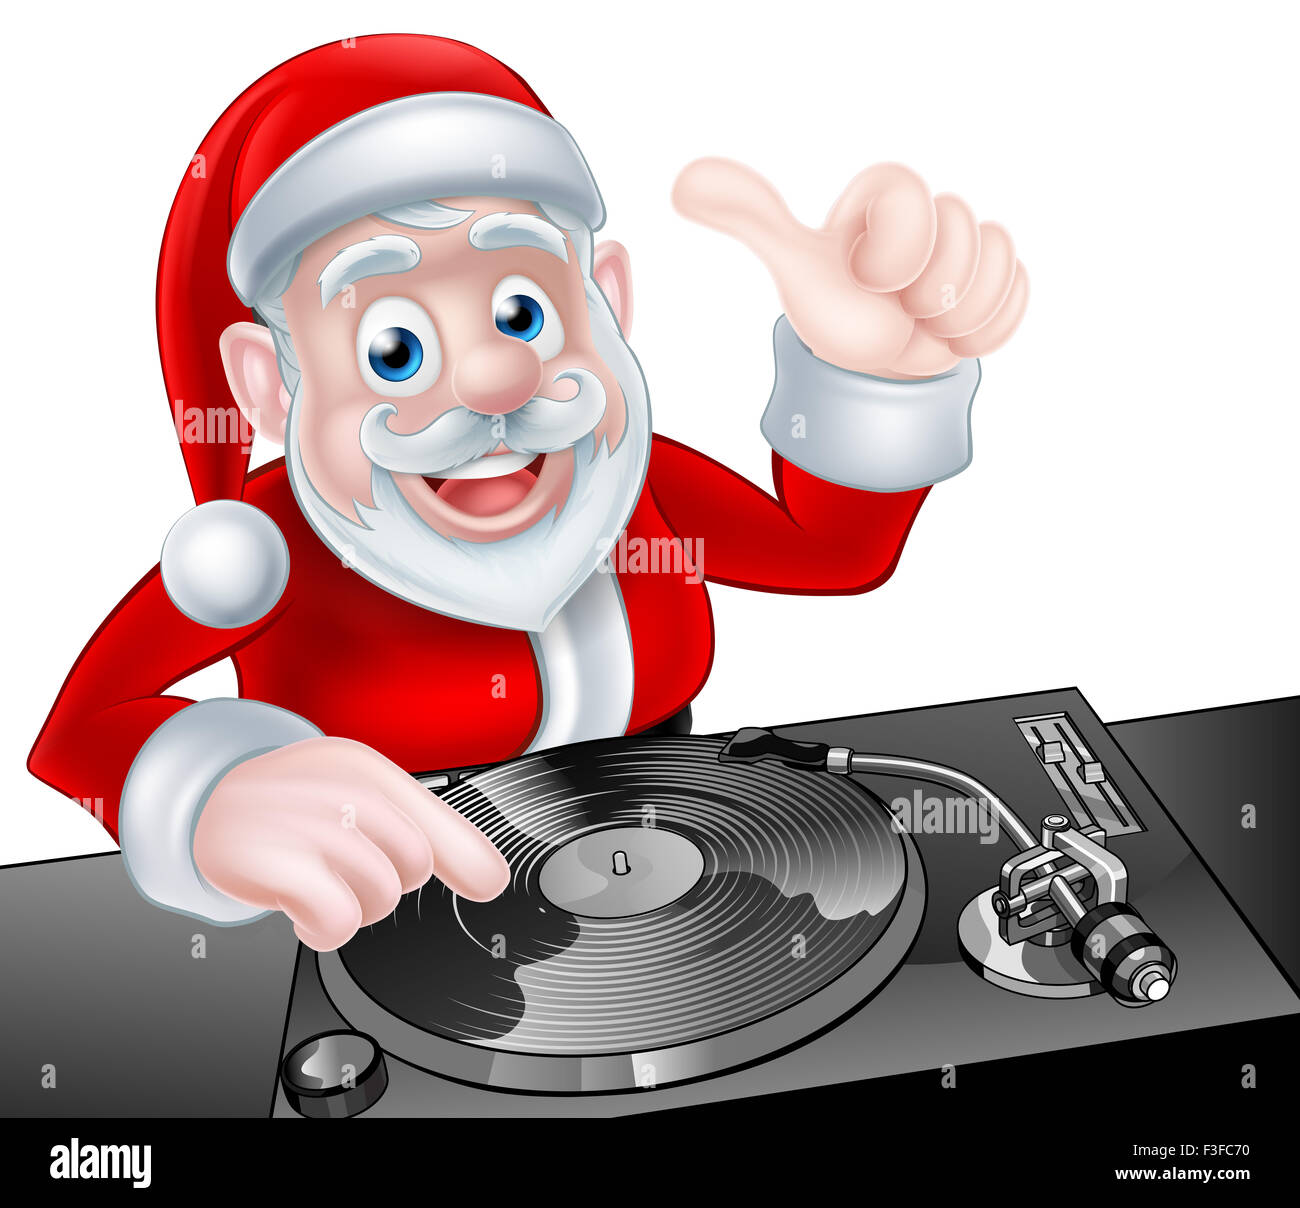 cool dj spinning decks stock photos  u0026 cool dj spinning decks stock images